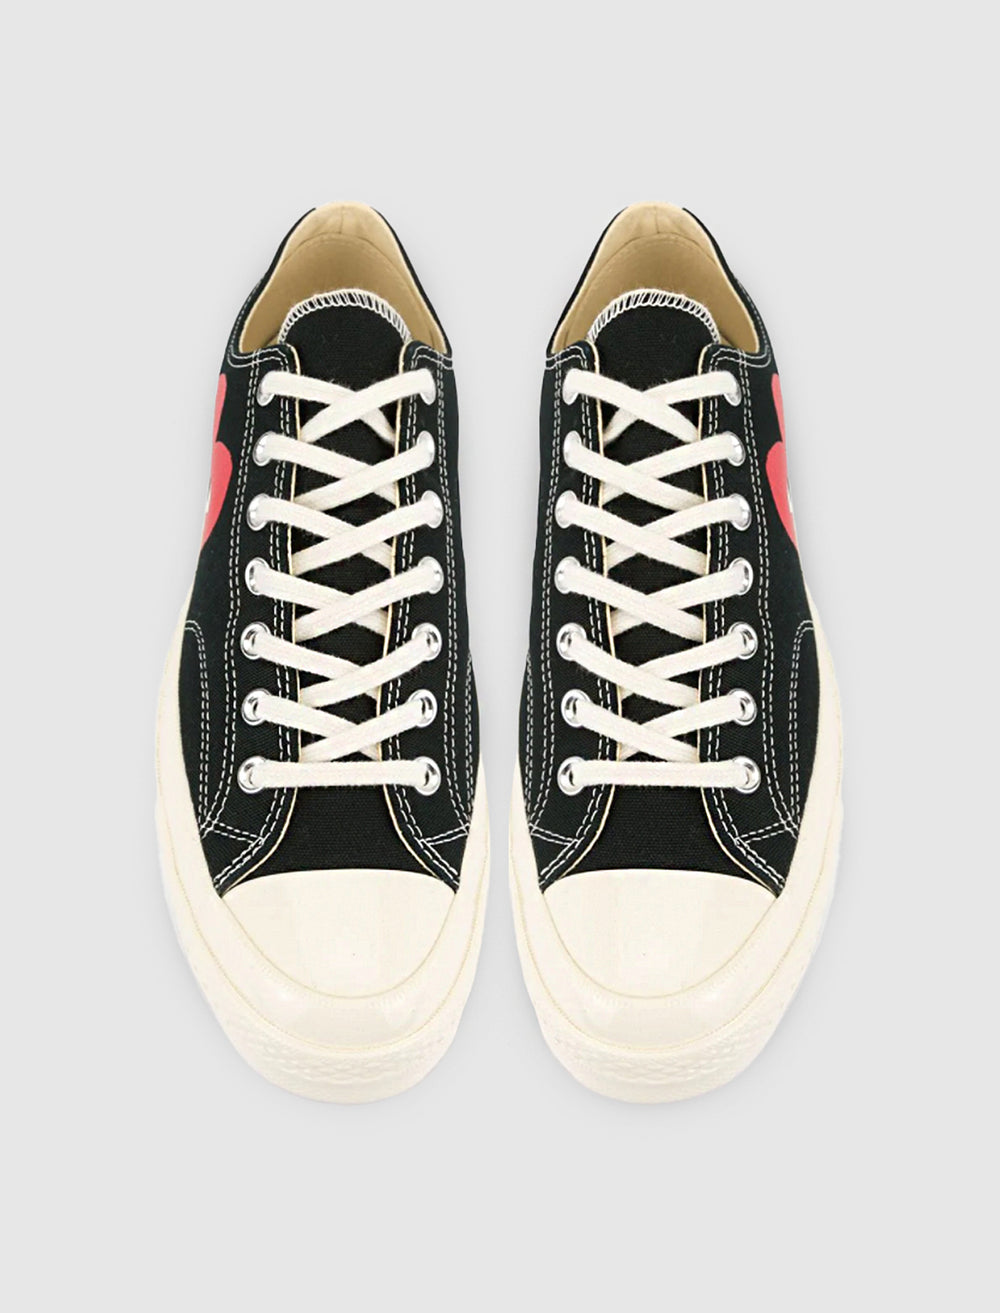 cdg-x-converse-low-3